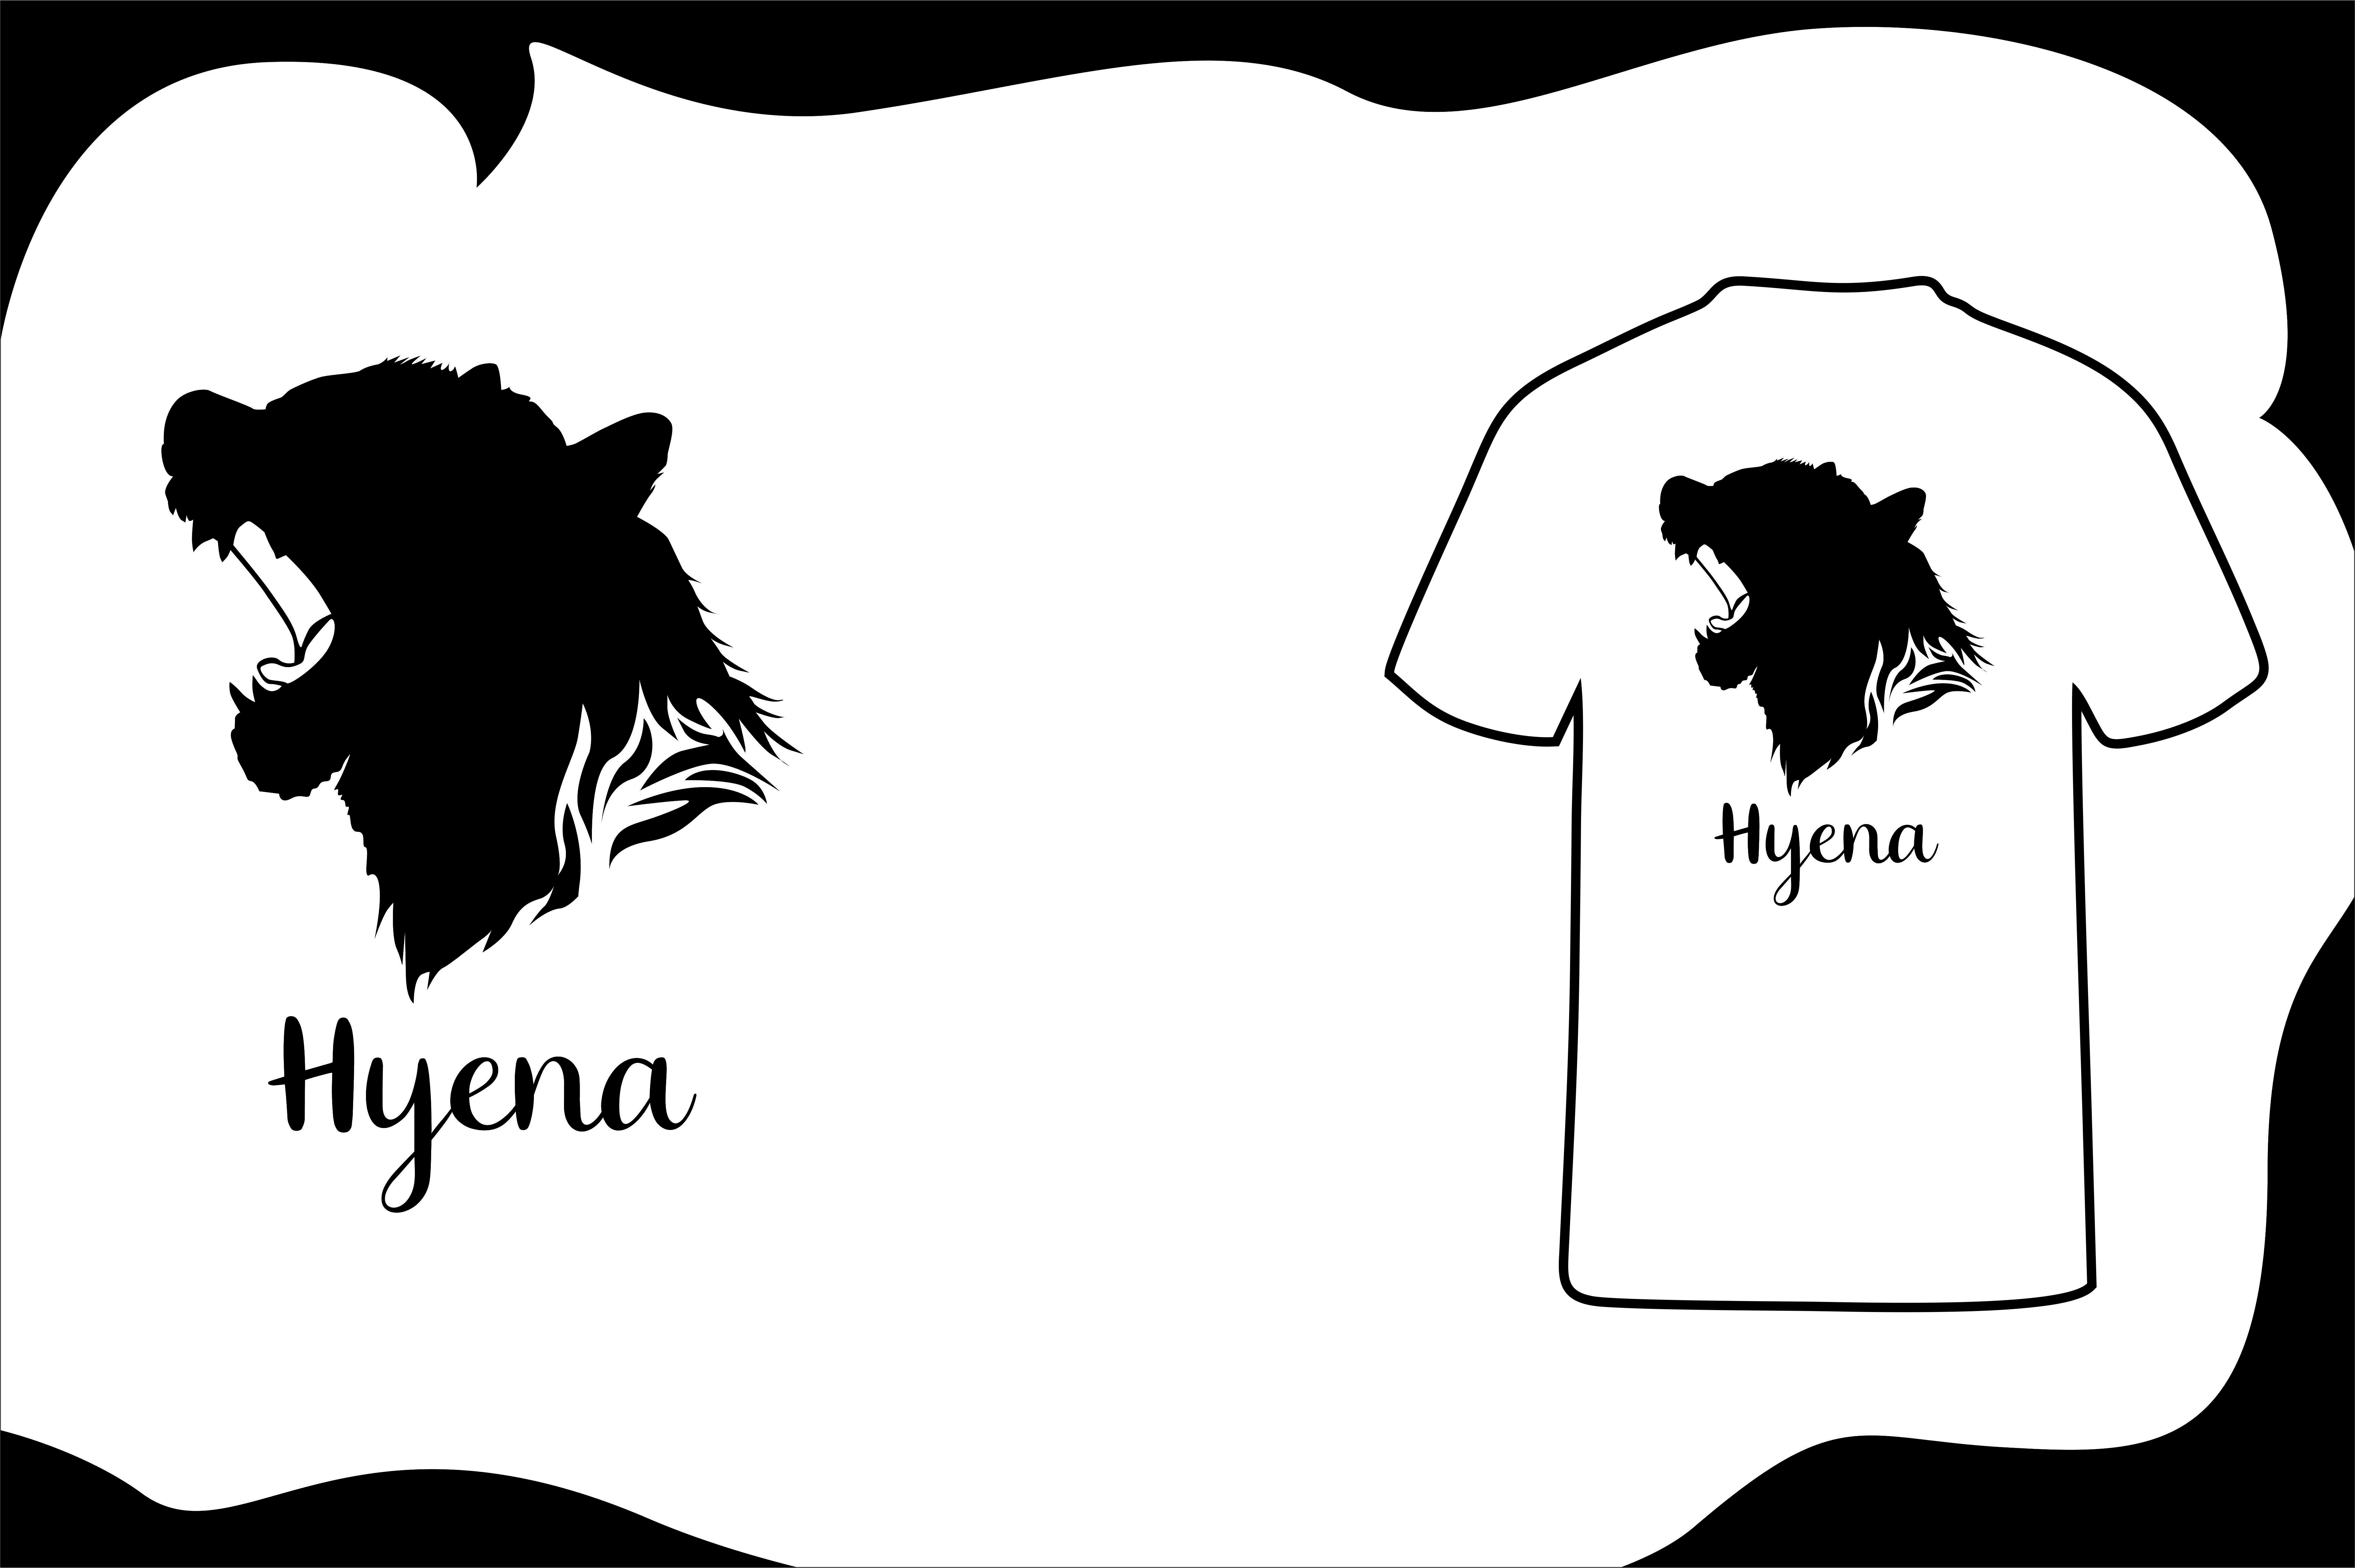 Download Free T Shirt Animal Silhouette Hyena Graphic By Arief Sapta Adjie for Cricut Explore, Silhouette and other cutting machines.